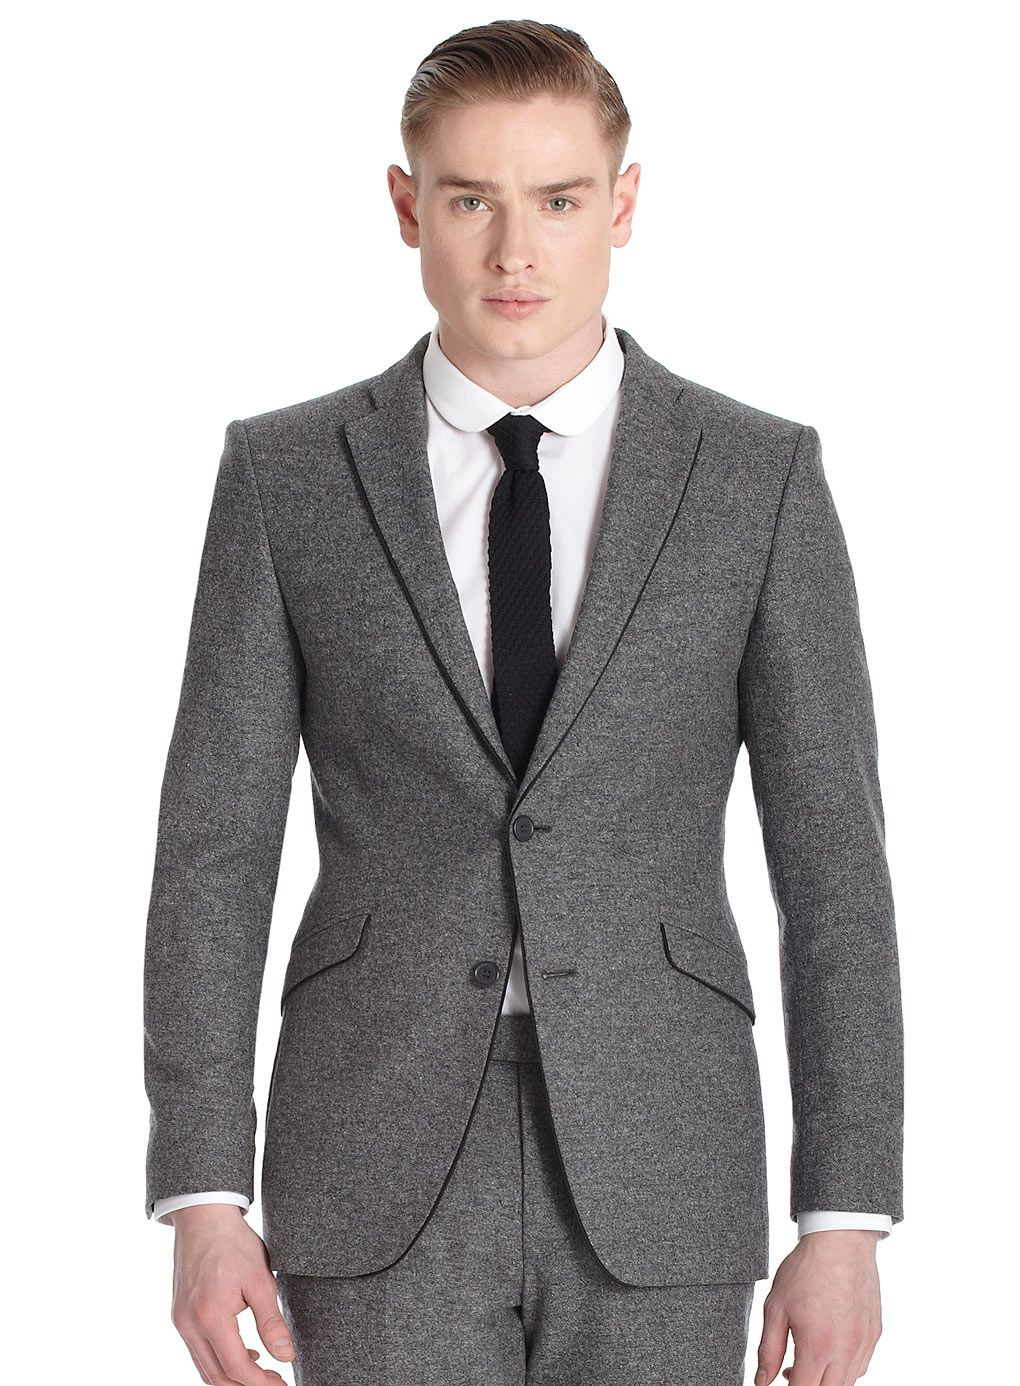 2 Piece Lambretta Grey Textured Slim Fit Suit - Mens Branded Suits - Suits  - Burton